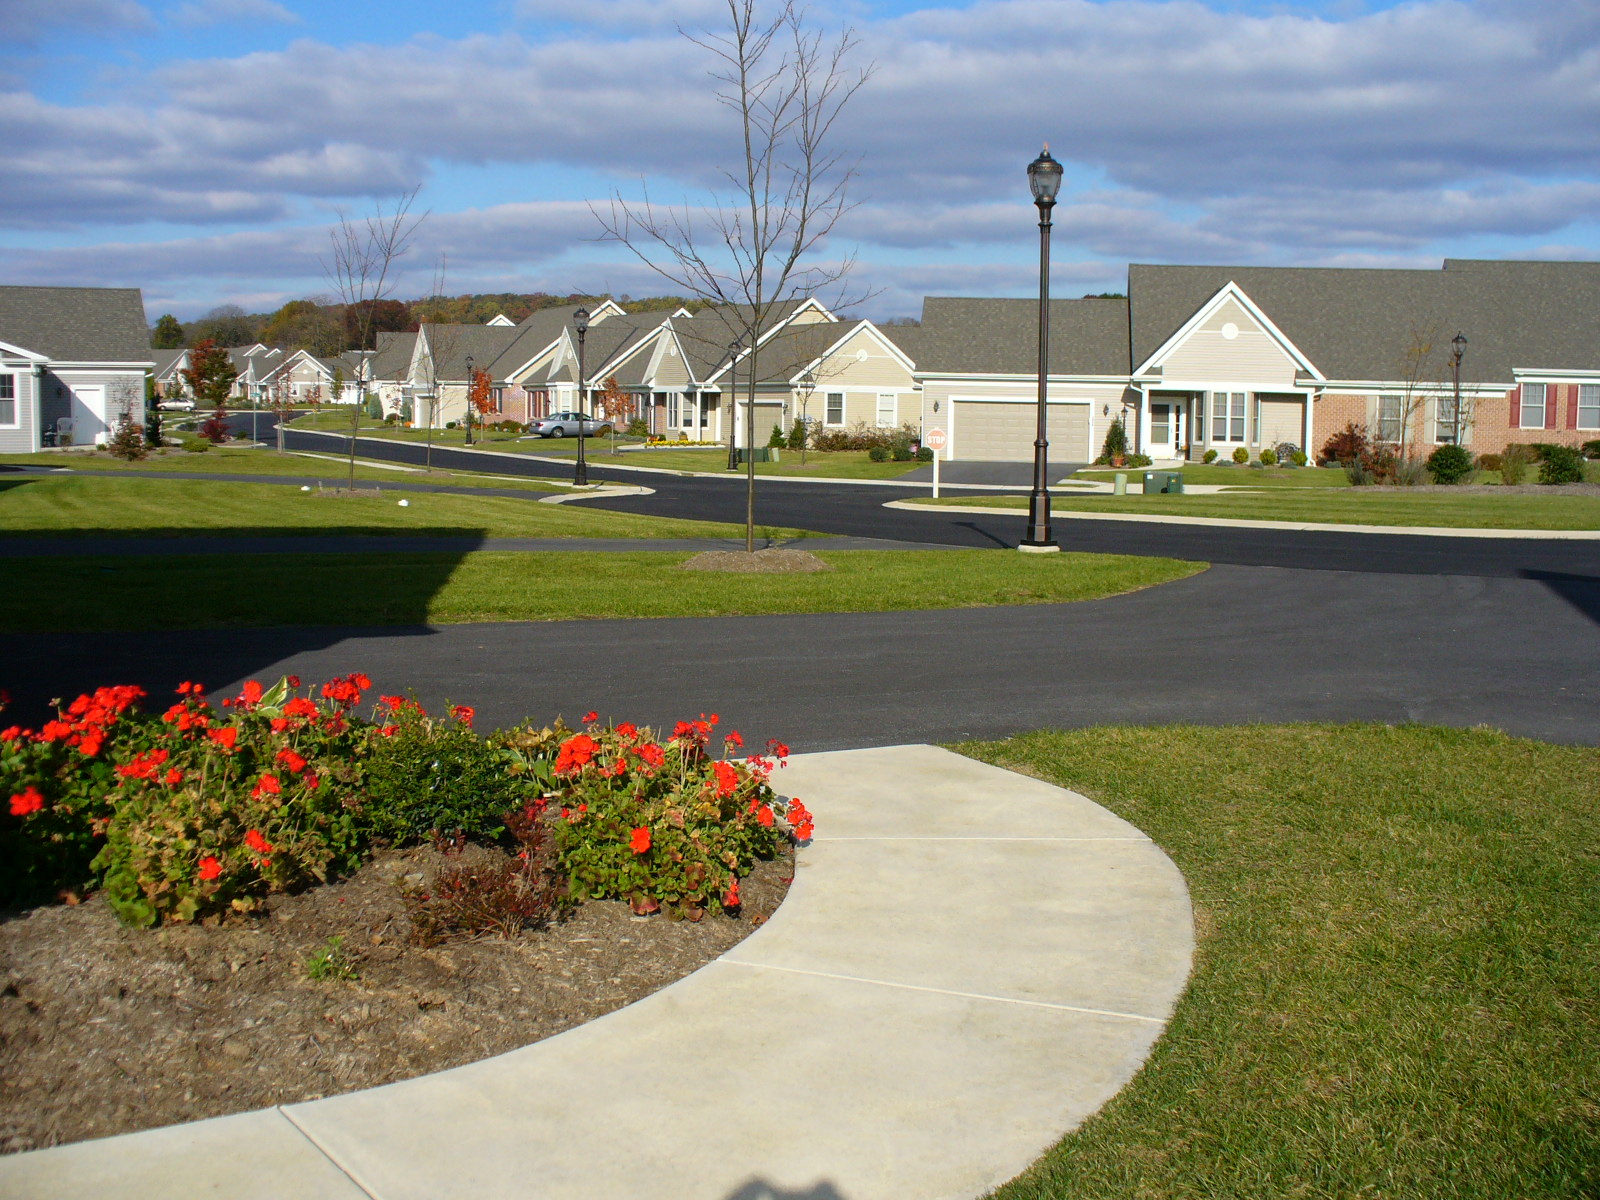 A sidewalk circles around a flower garden in front of home rows